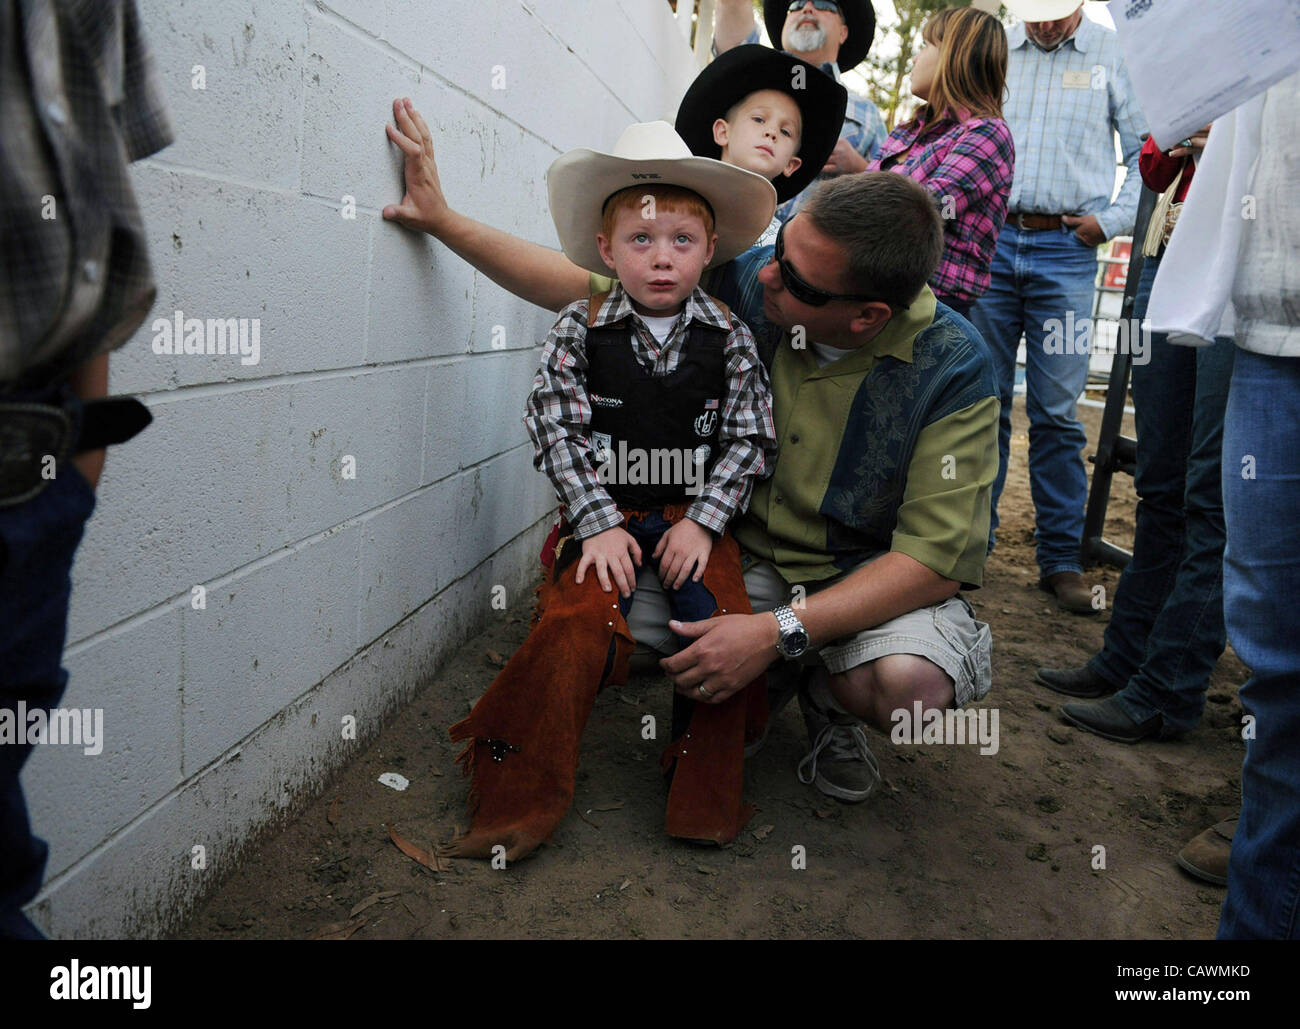 April 27, 2012 - Clovis, CA, U.S. - A tearful and terrified Zachary Hail, 5, is talked to by his father before entering - Stock Image